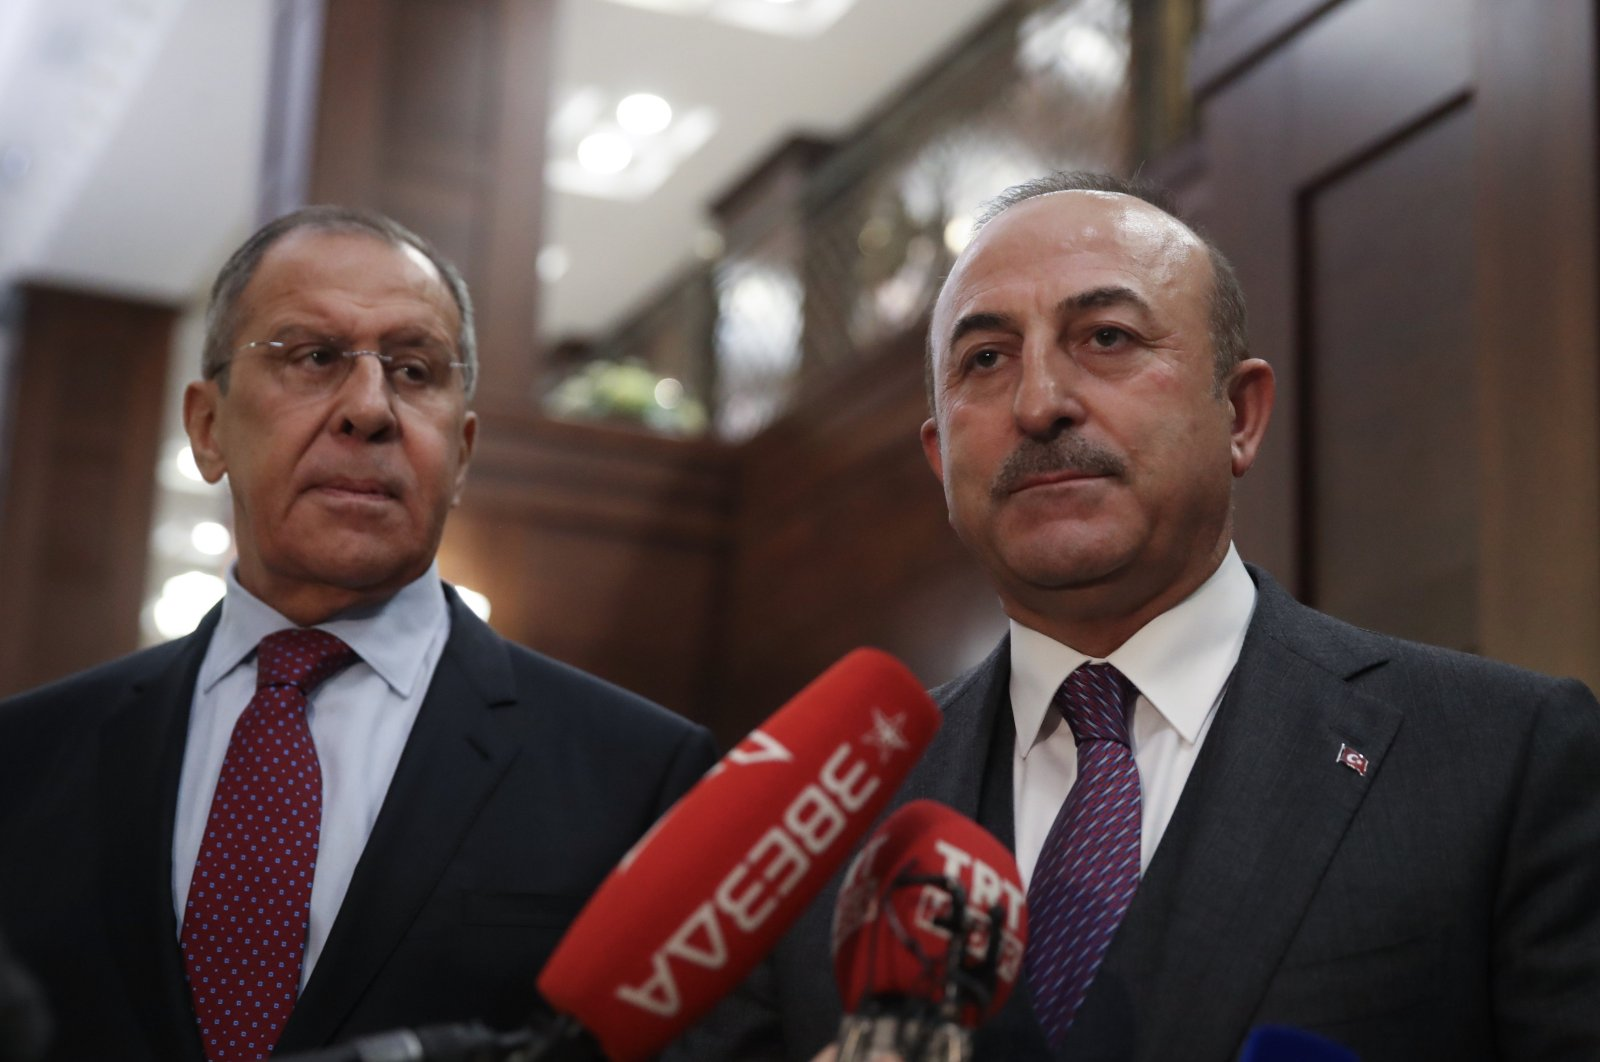 Foreign Minister Mevlüt Çavuşoğlu and his Russian counterpart Sergey Lavrov during a joint press conference after talks on Syria in Moscow, Dec. 30, 2018. (AA Photo)